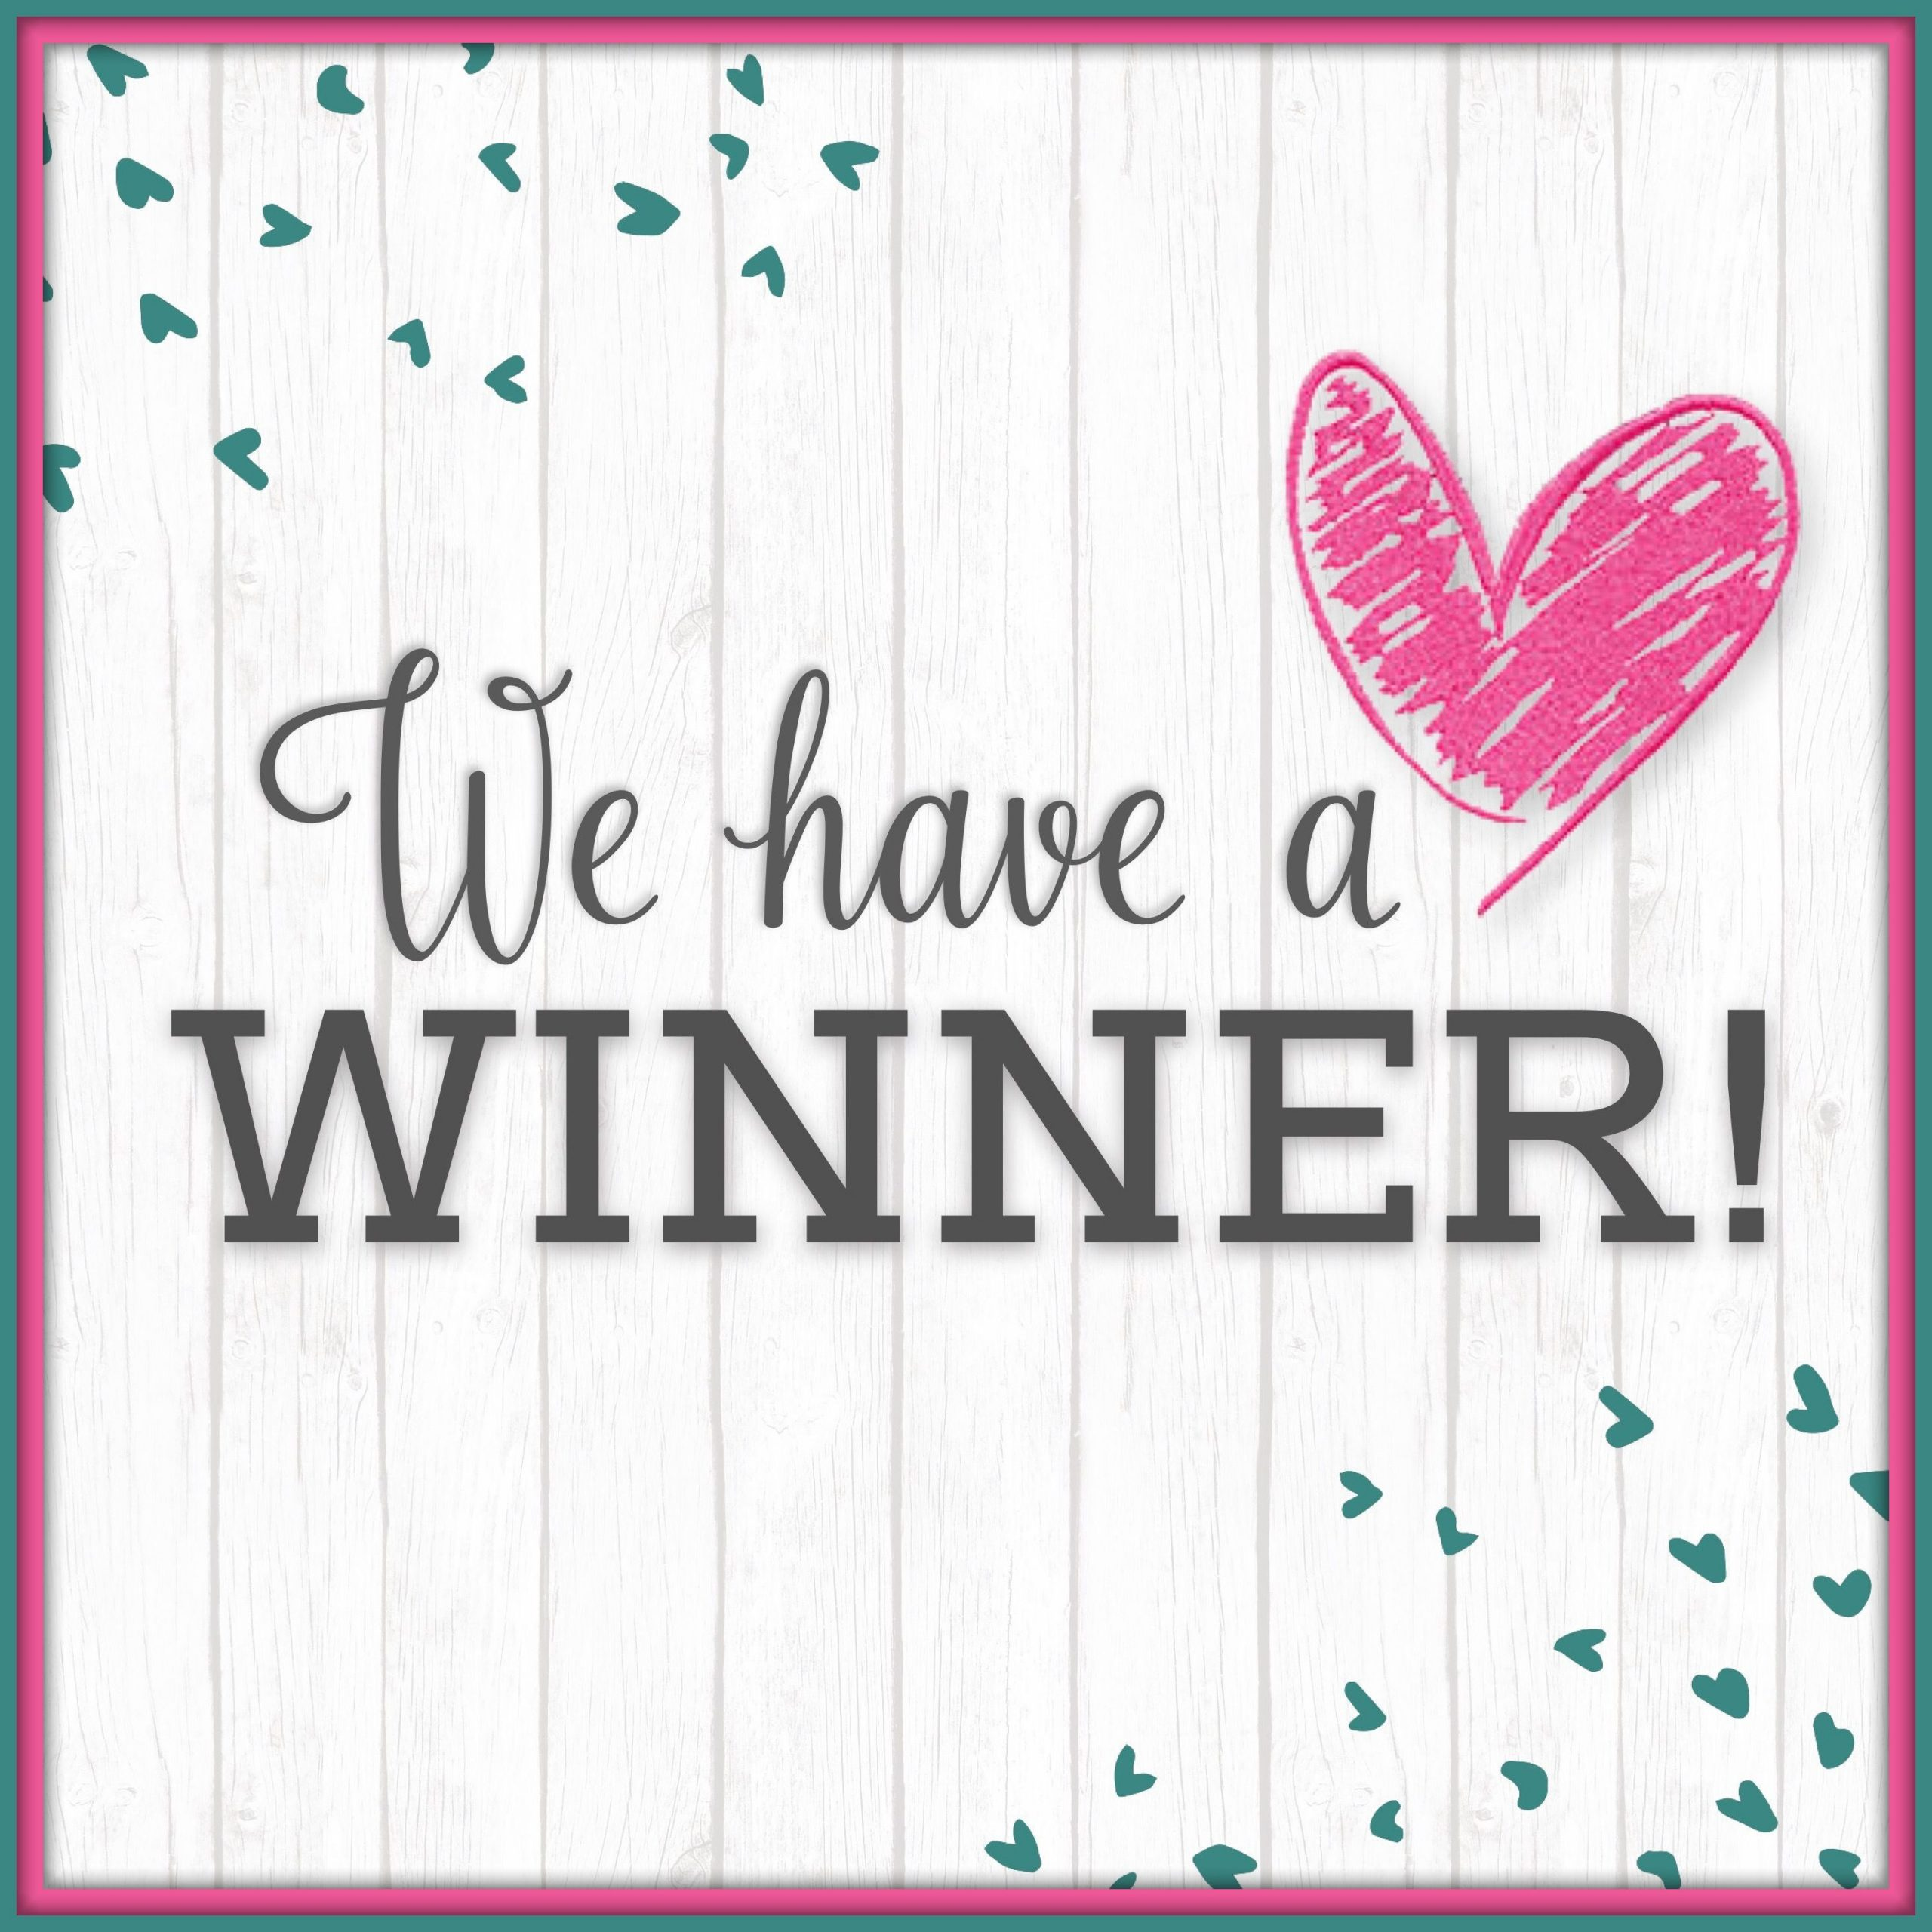 Hurray! Our Giveaway Winners have been Selected (You can participate in the next one)